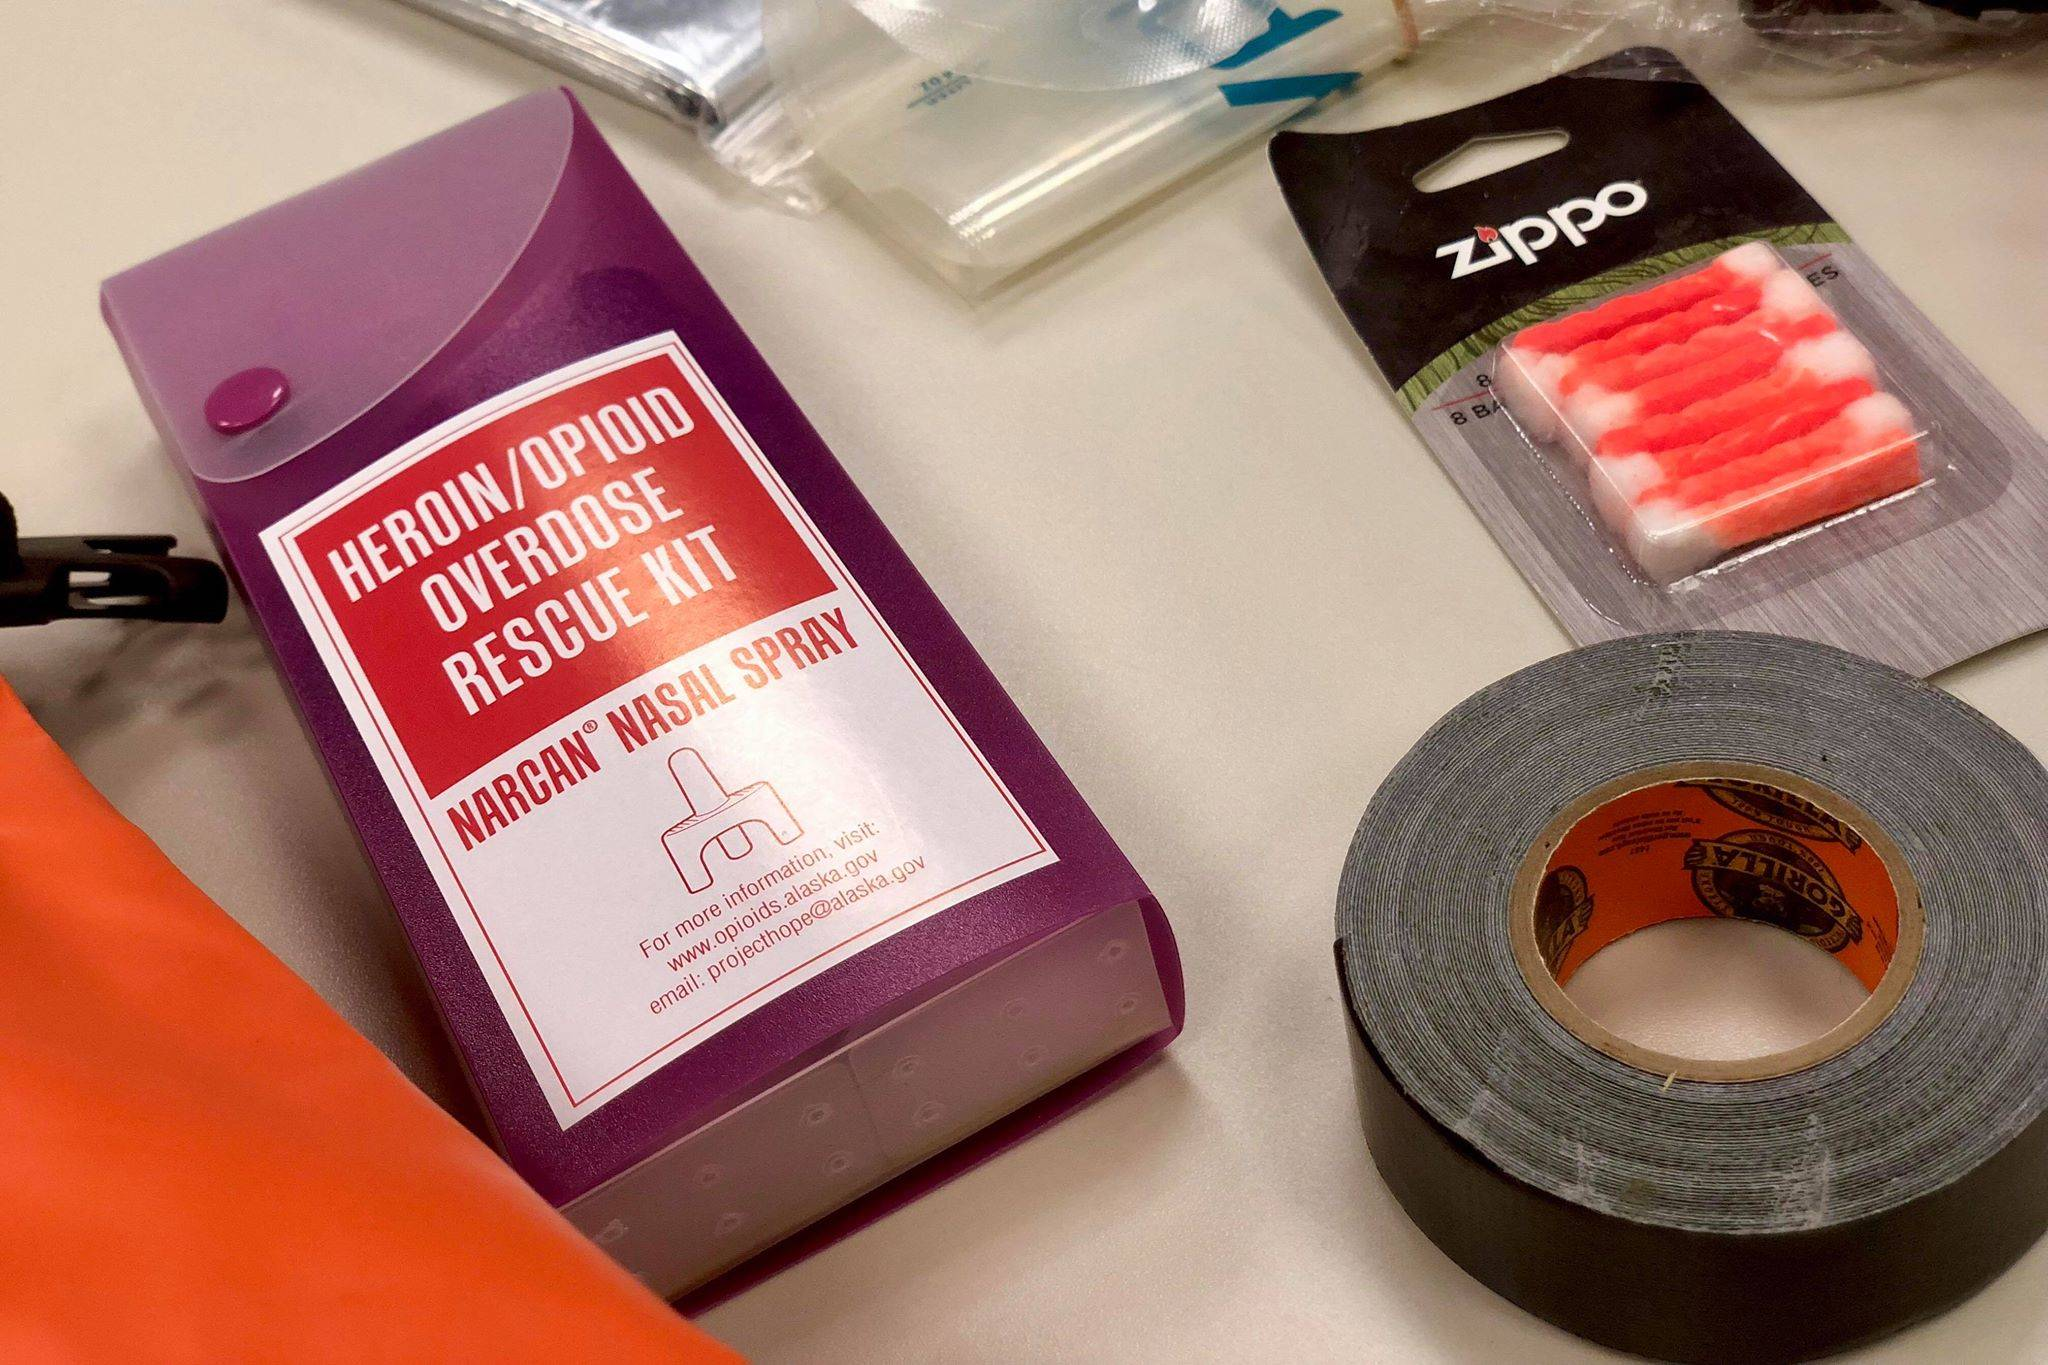 A Narcan kit can be used to reverse the effects of an opioid-related overdose, on Thursday, Oct. 18, 2018, in Kenai, AK. (Photo by Victoria Petersen/Peninsula Clarion)